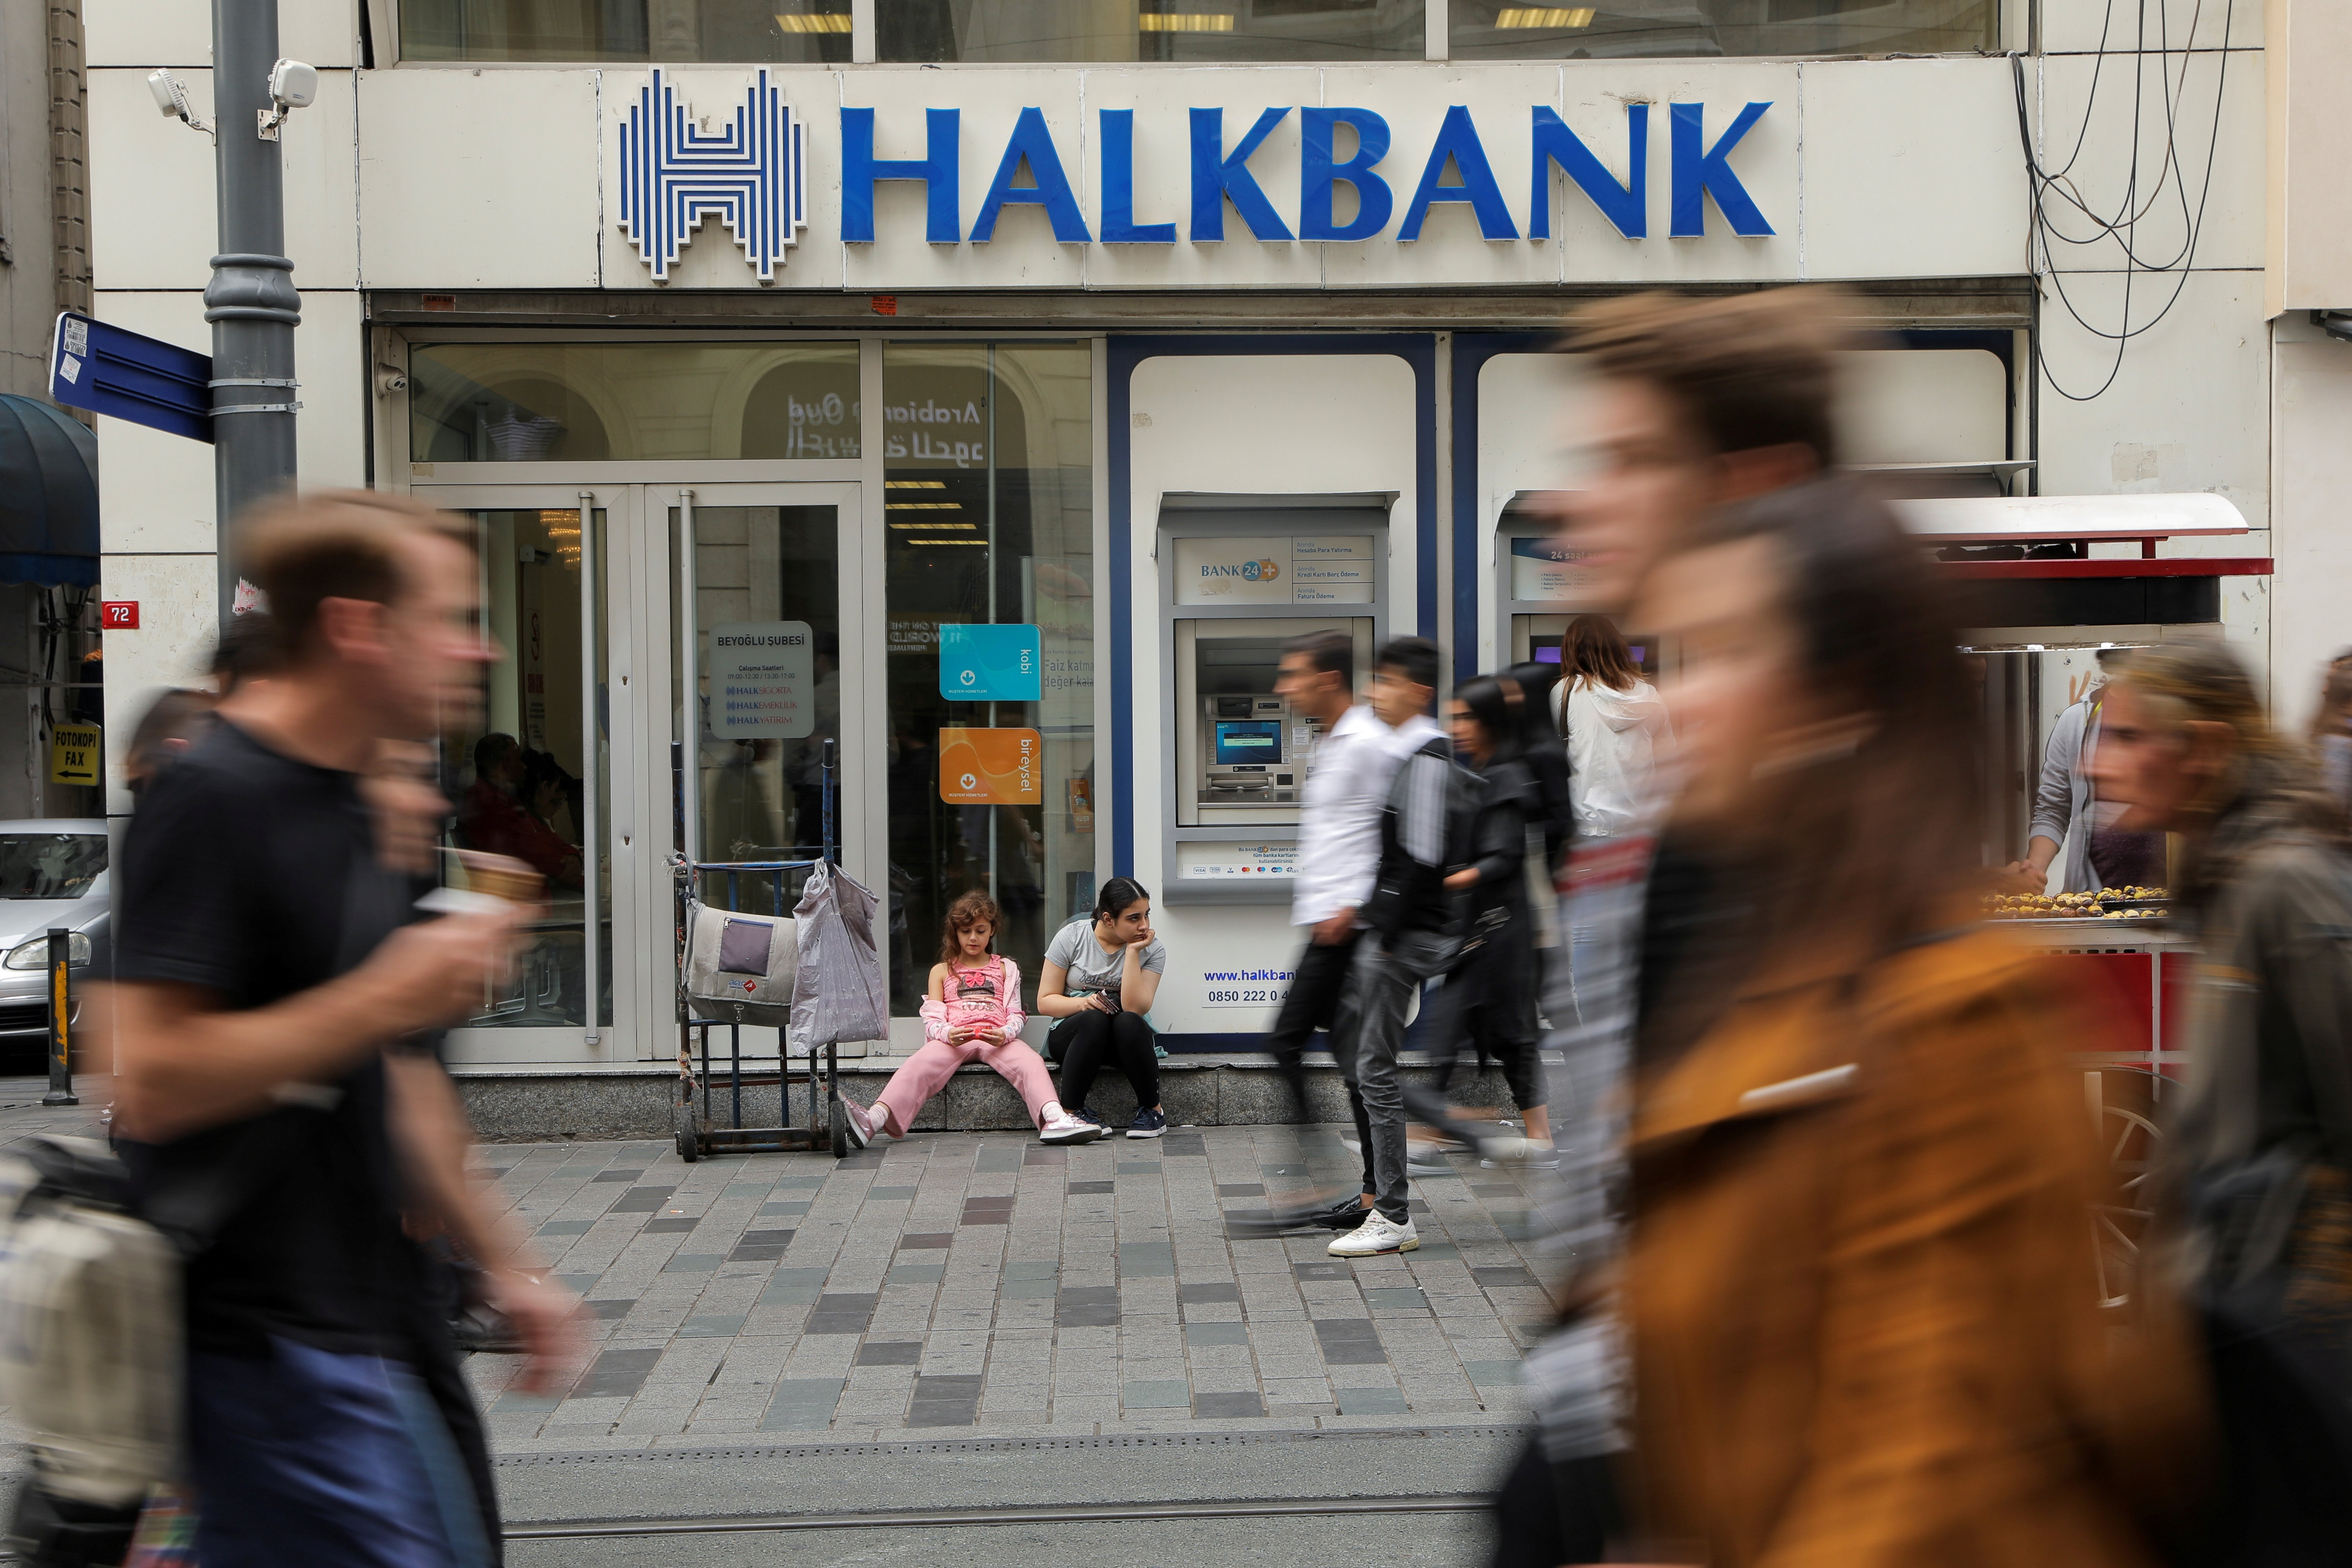 Public lender Halkbank to appear in US court to respond to Iran sanctions charges thumbnail